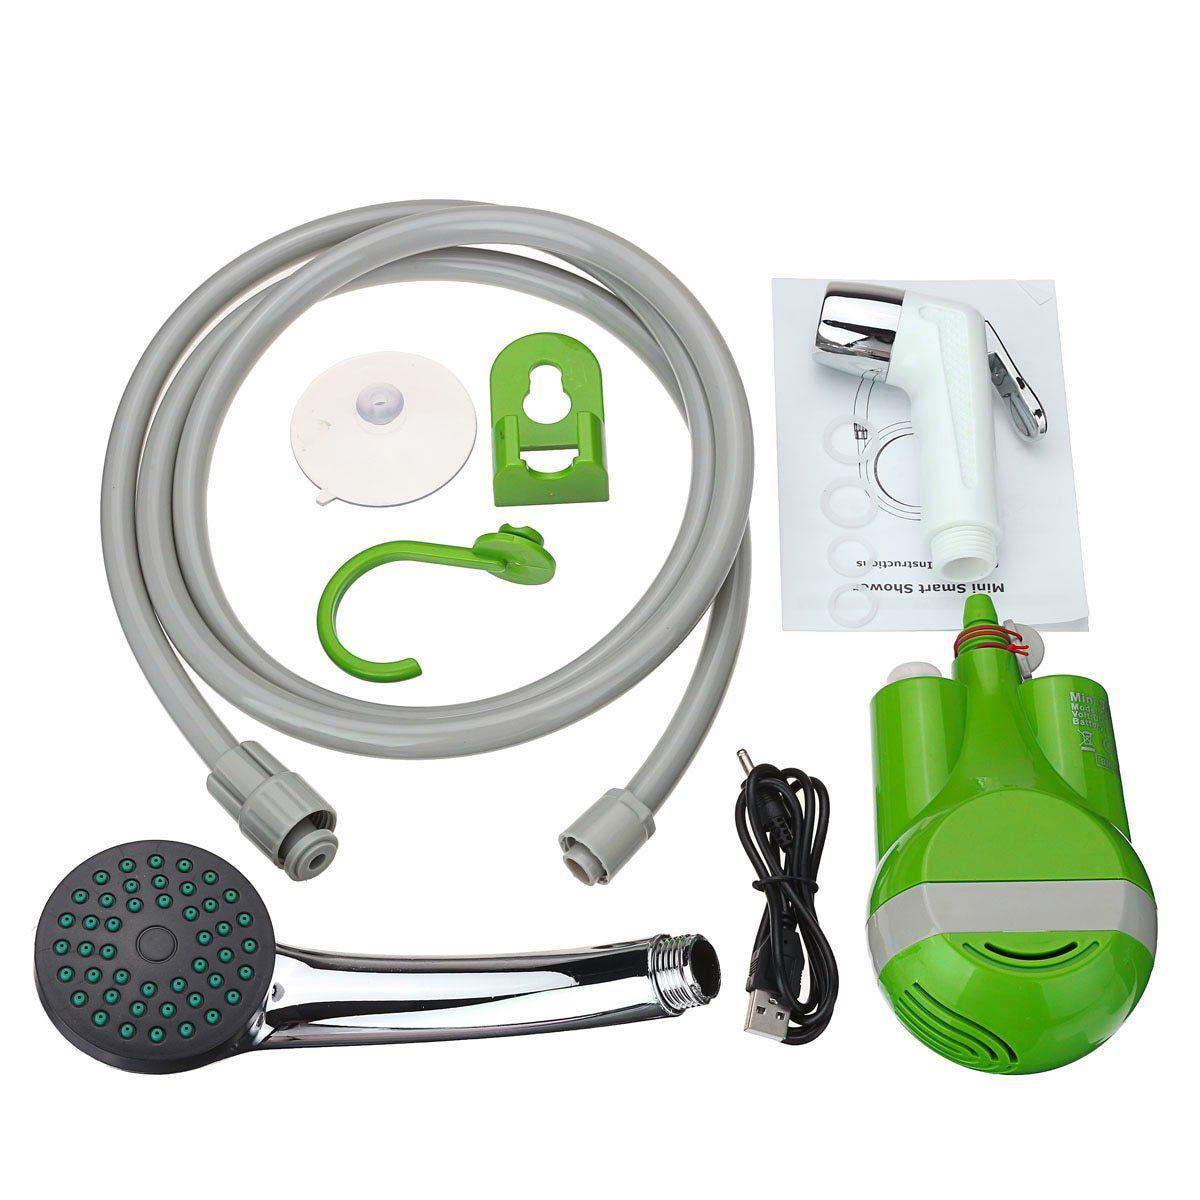 Portable USB Outdoor Shower